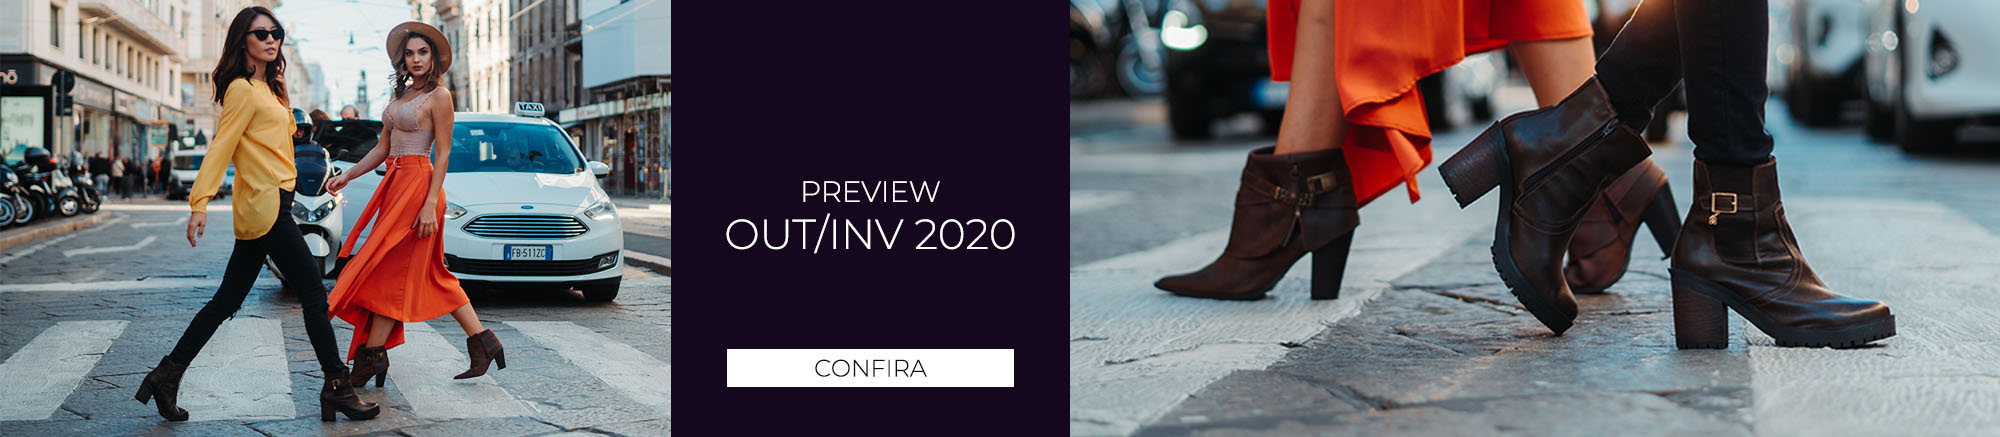 Banner - Preview Inverno 2020